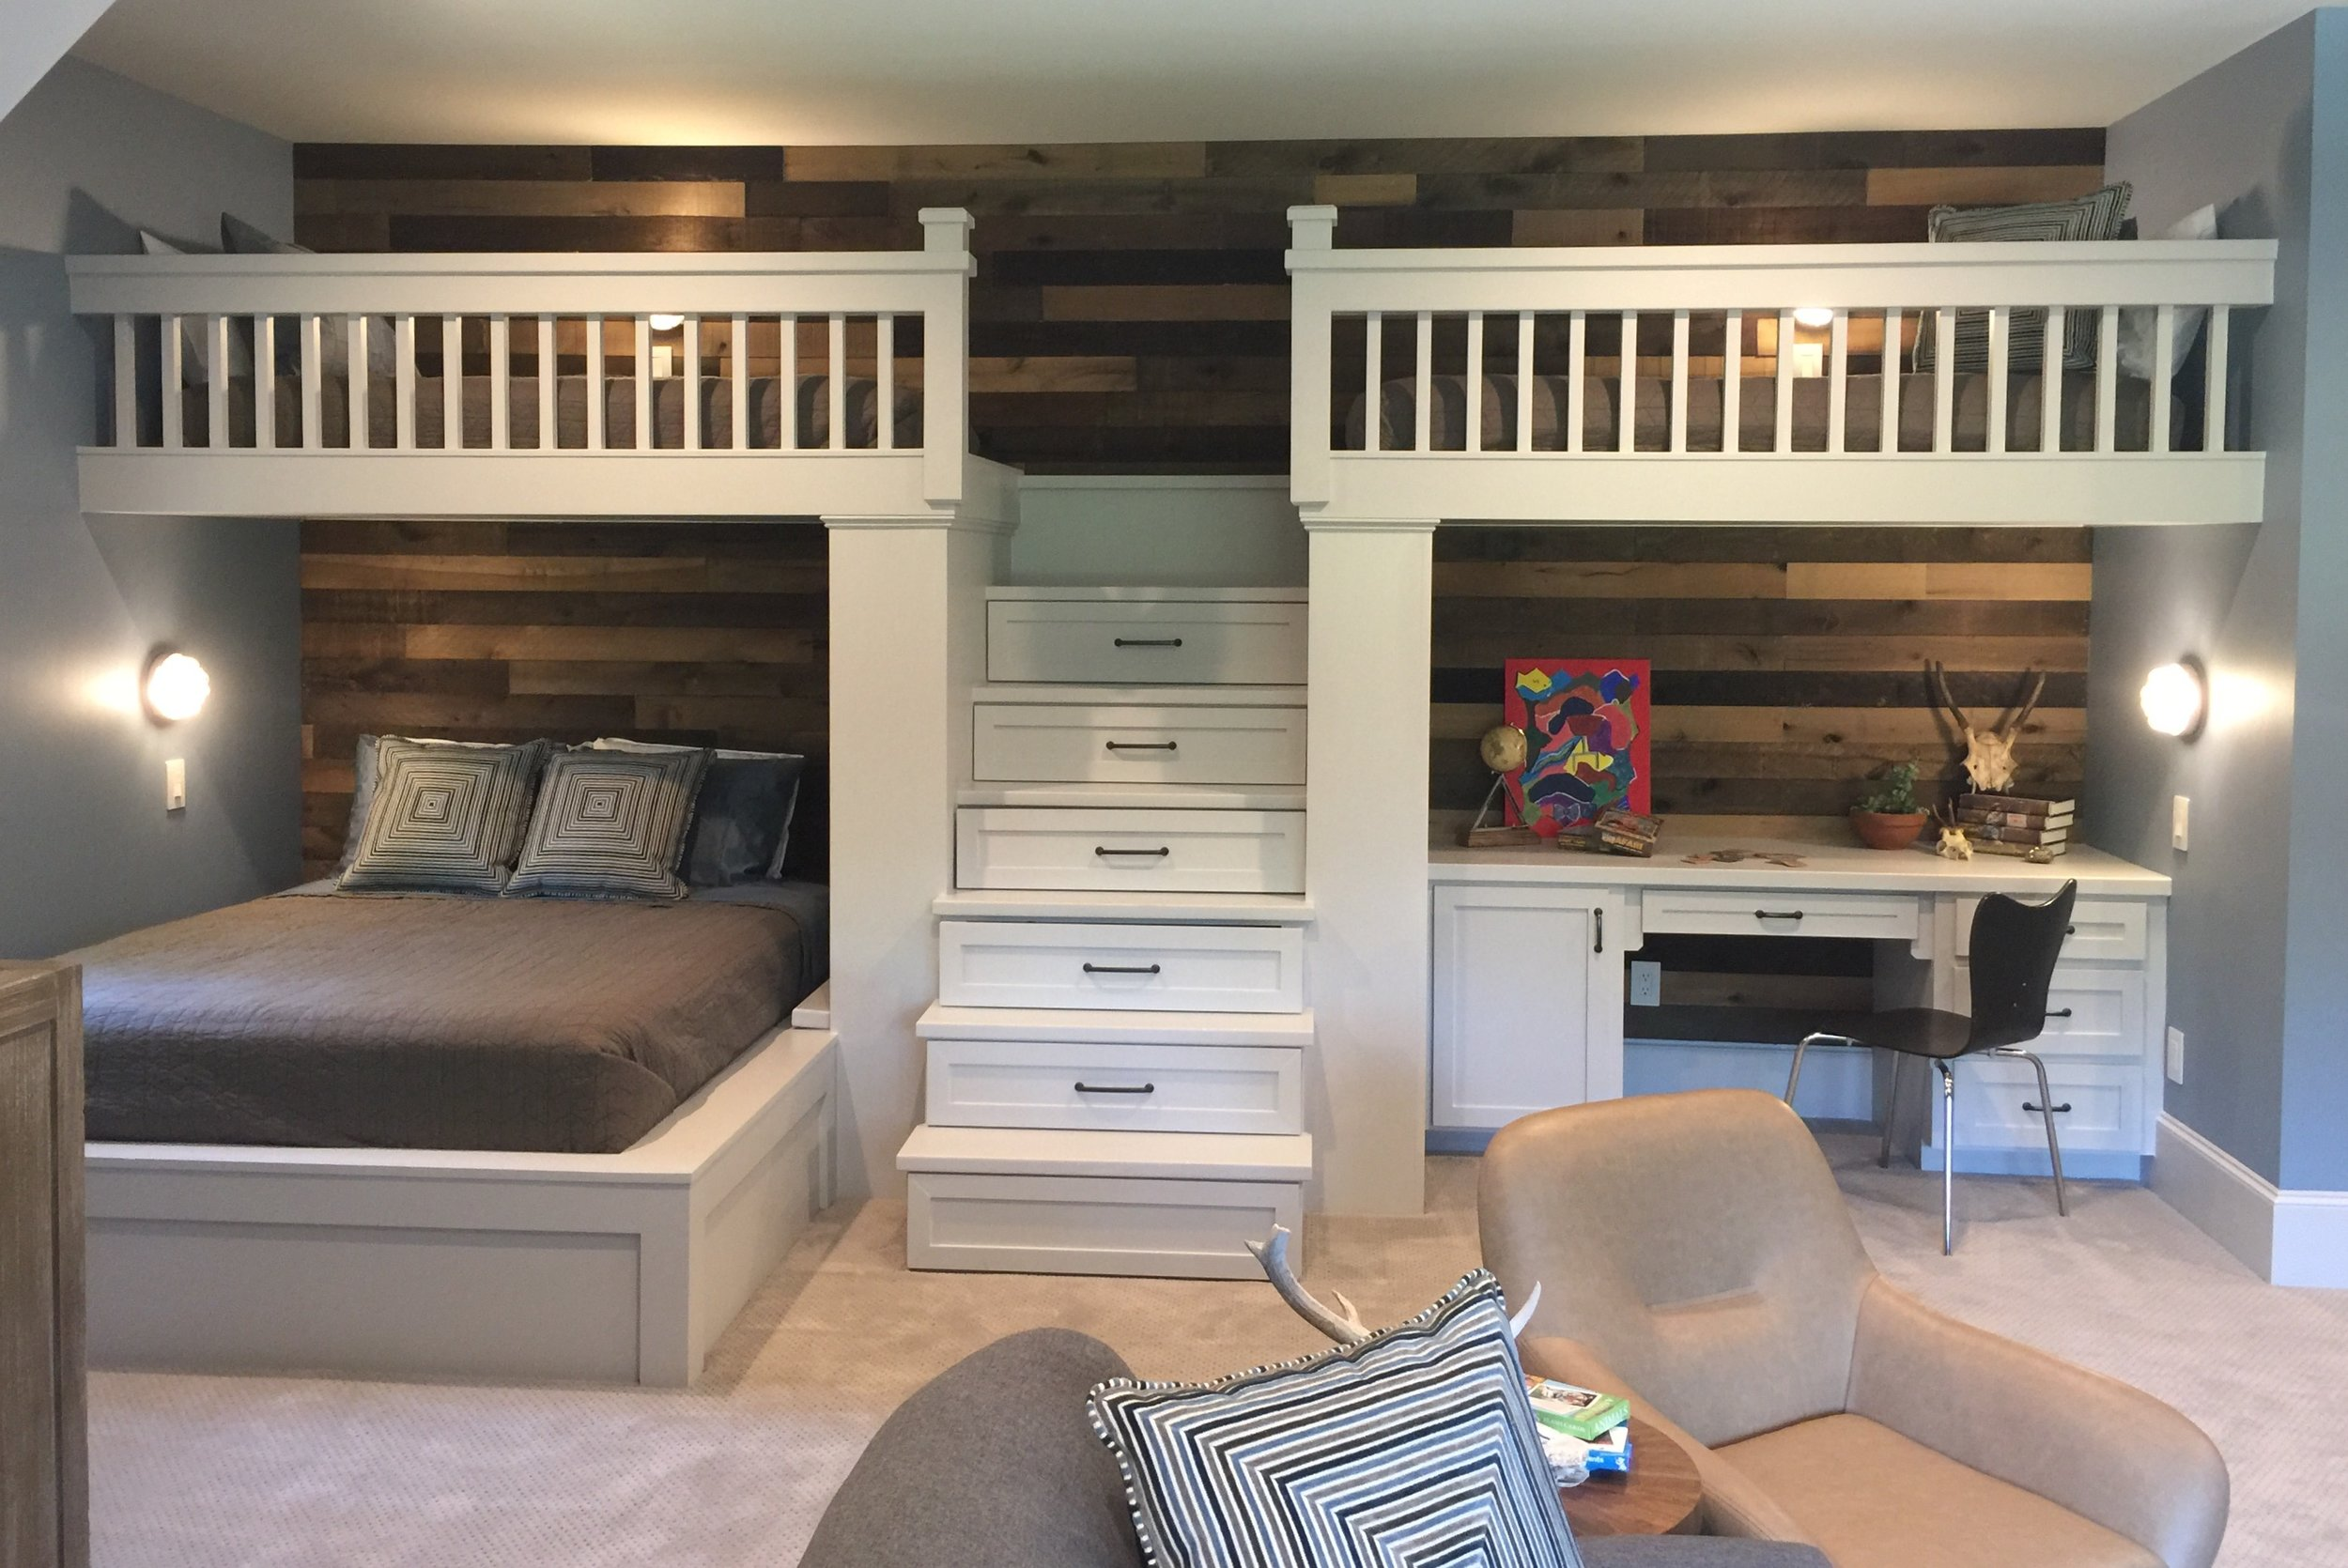 Coolest Bunk Room Ever at the Southern Living Showcase Home in Montgomery, TX, Designed by Chairma Design Group